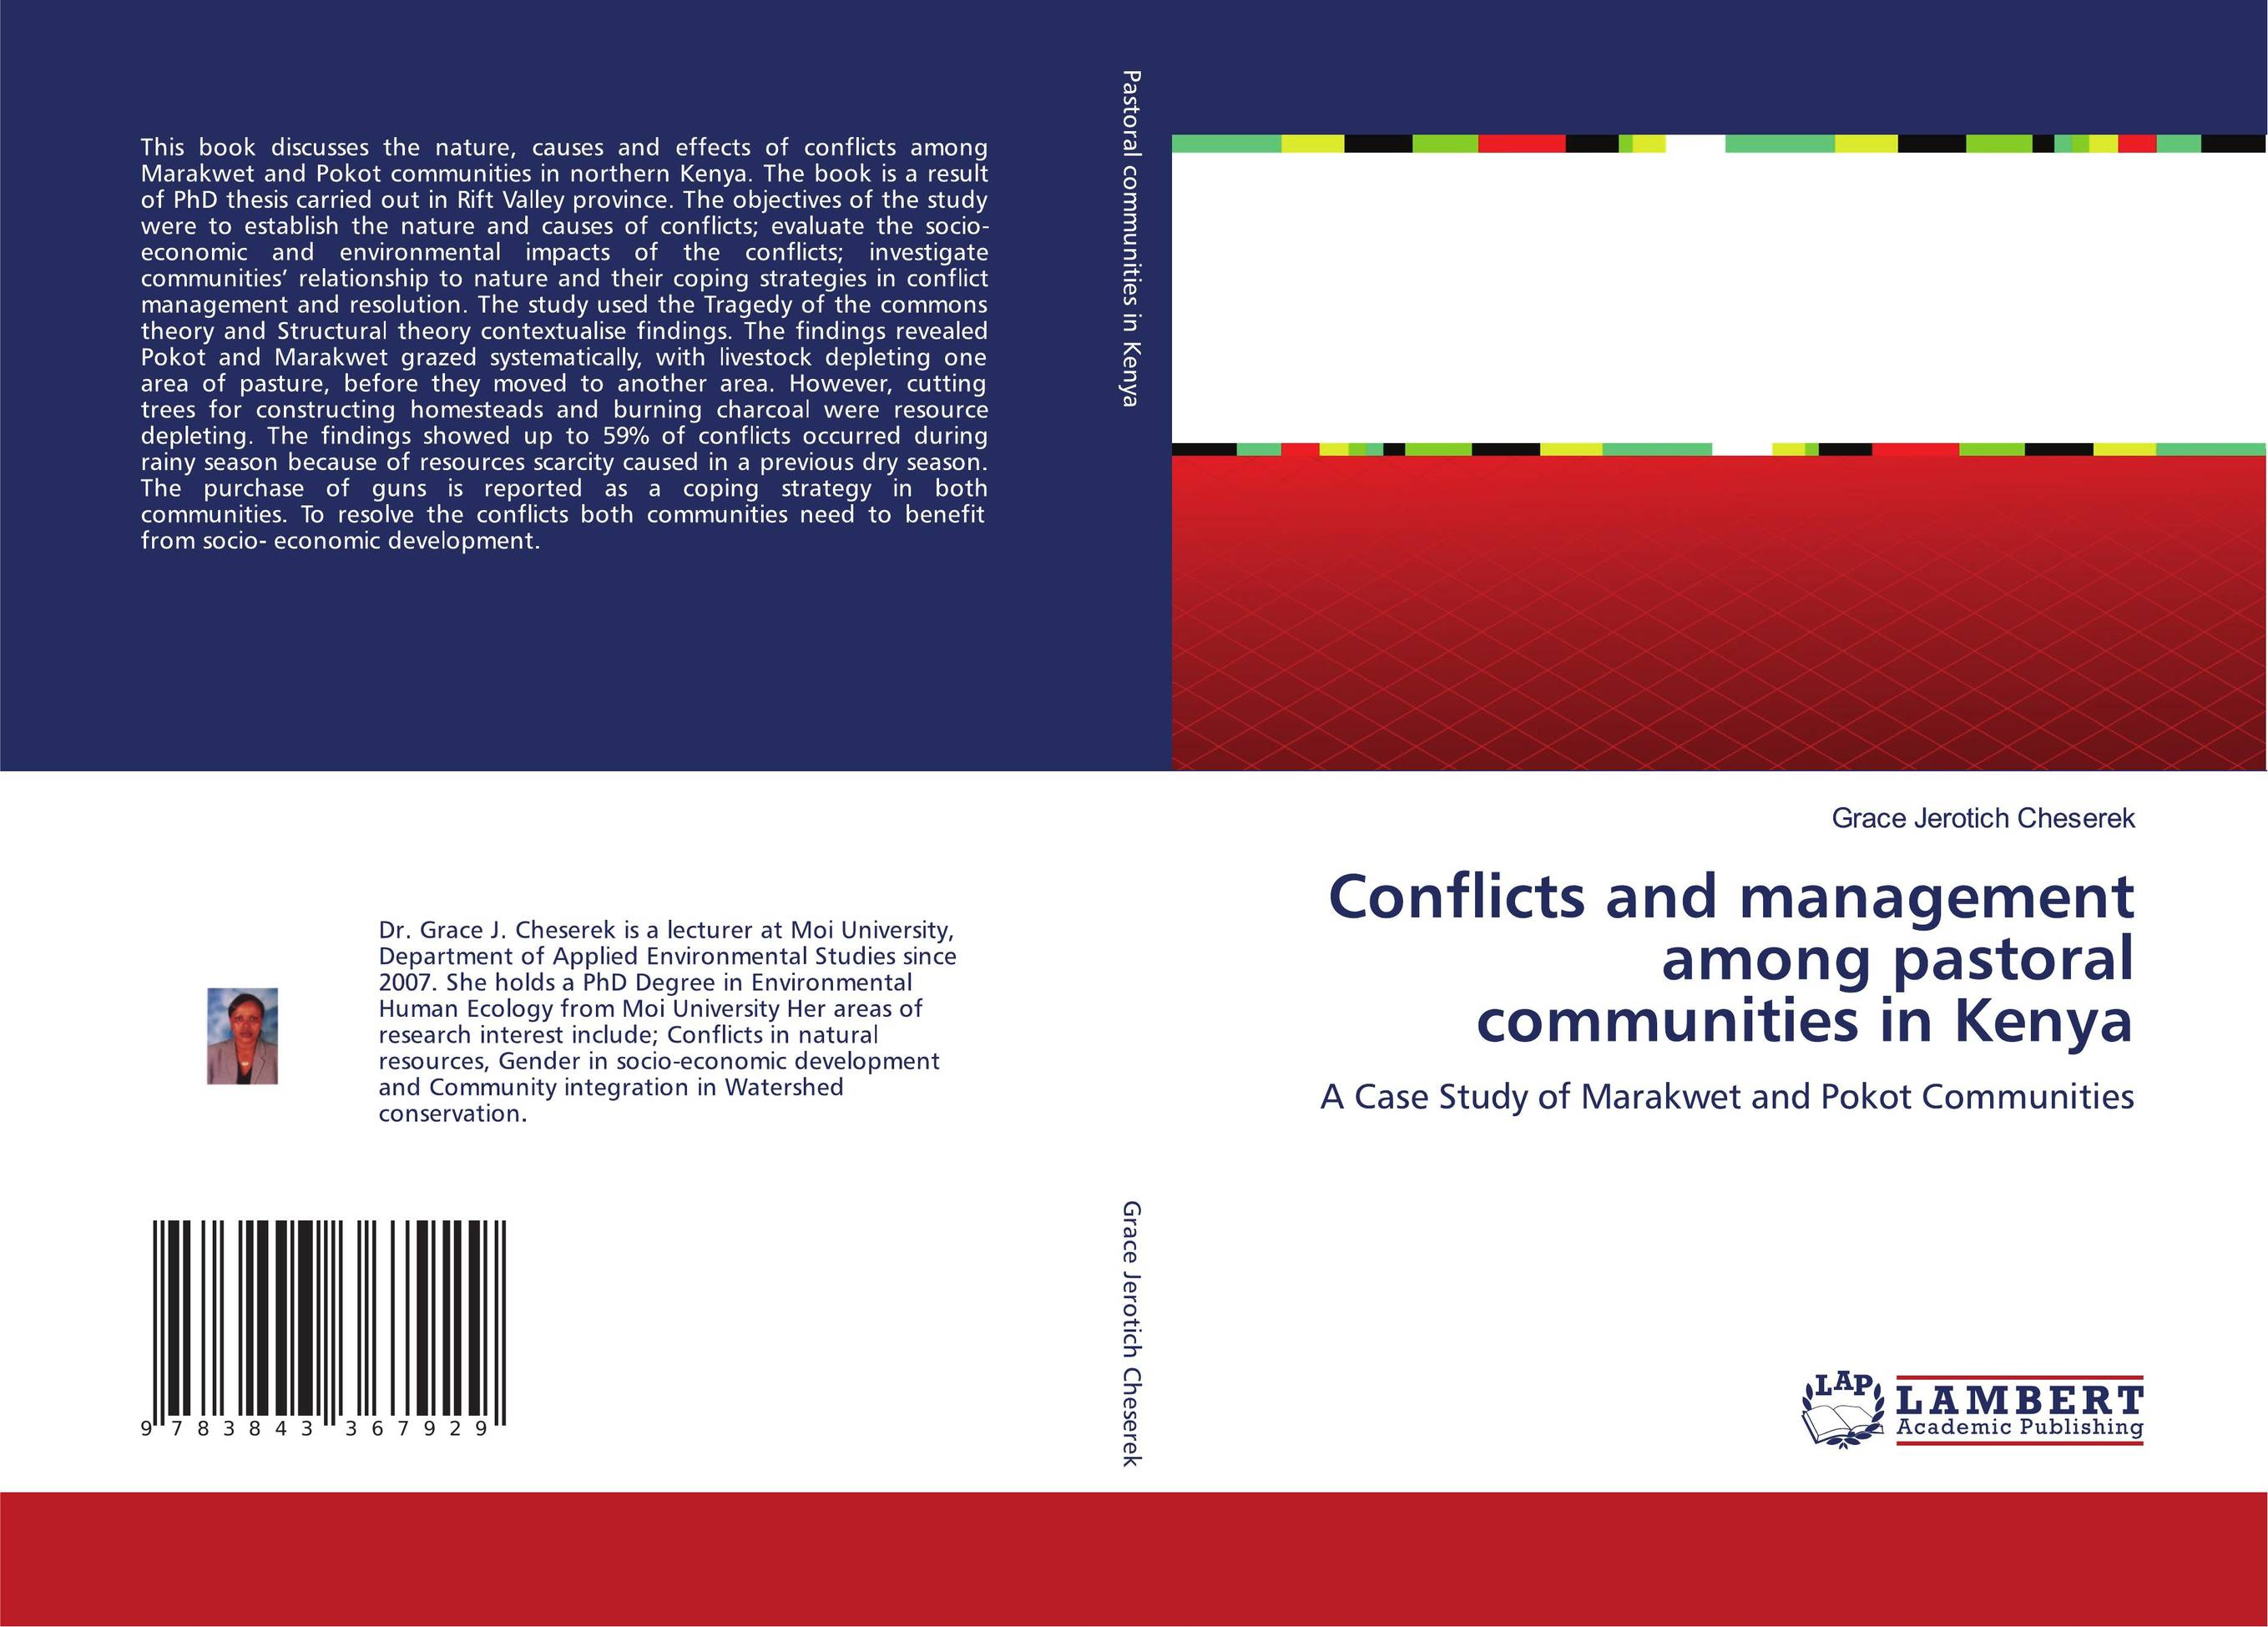 natural resource conflict management case studies Case study wrote by philip hirsch and khamla phanvilay that deals with community-based natural resource management and watershed resource conflict in lao pdr these crucial points enter in the process of disaster relief and enable local populations to avoid complex emergencies.